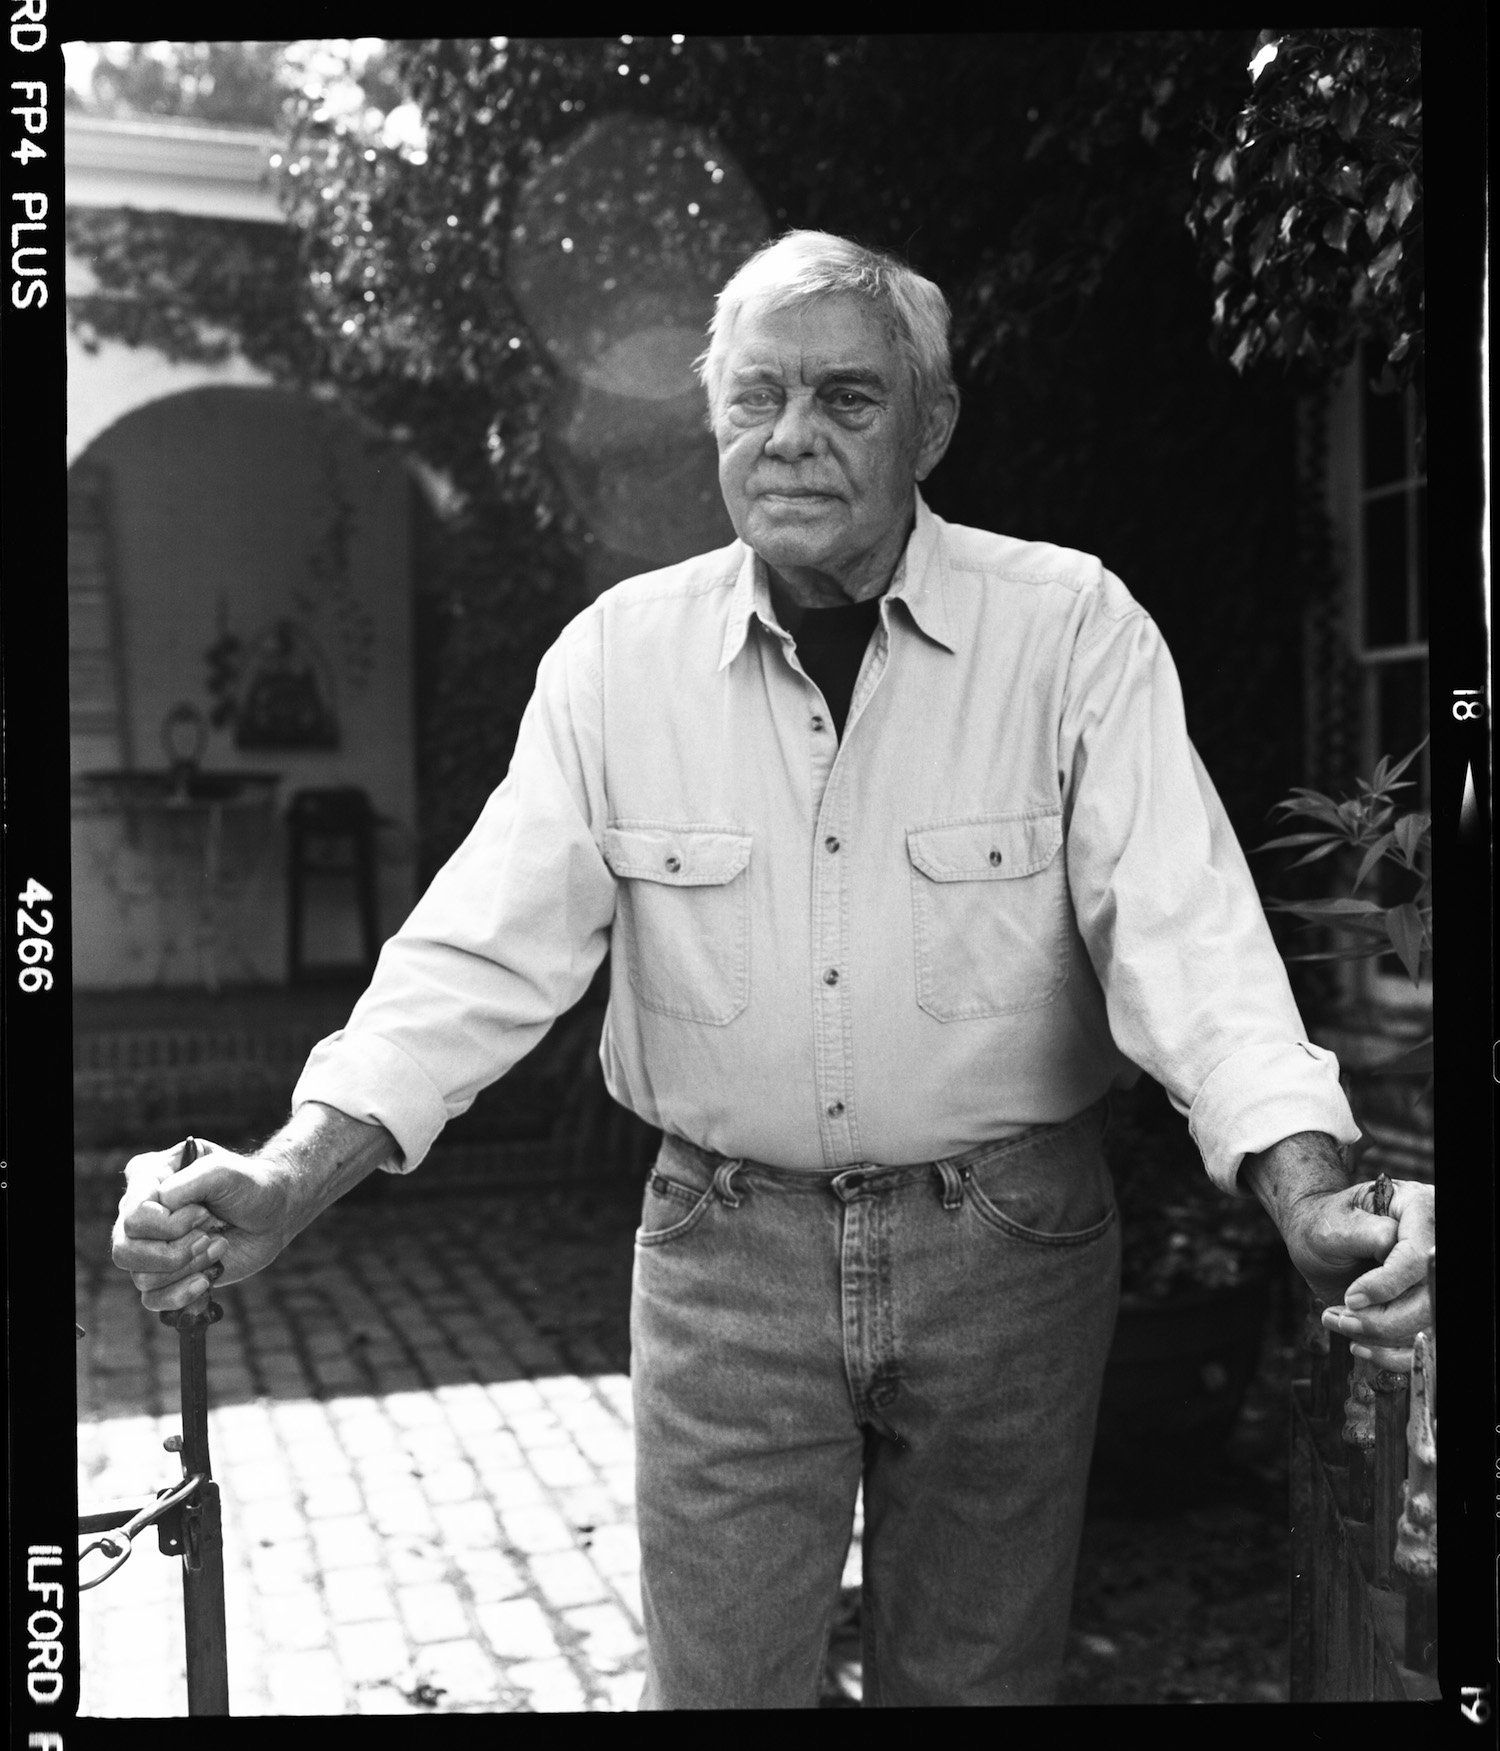 Tom T Hall The Person Comes First Songwriting